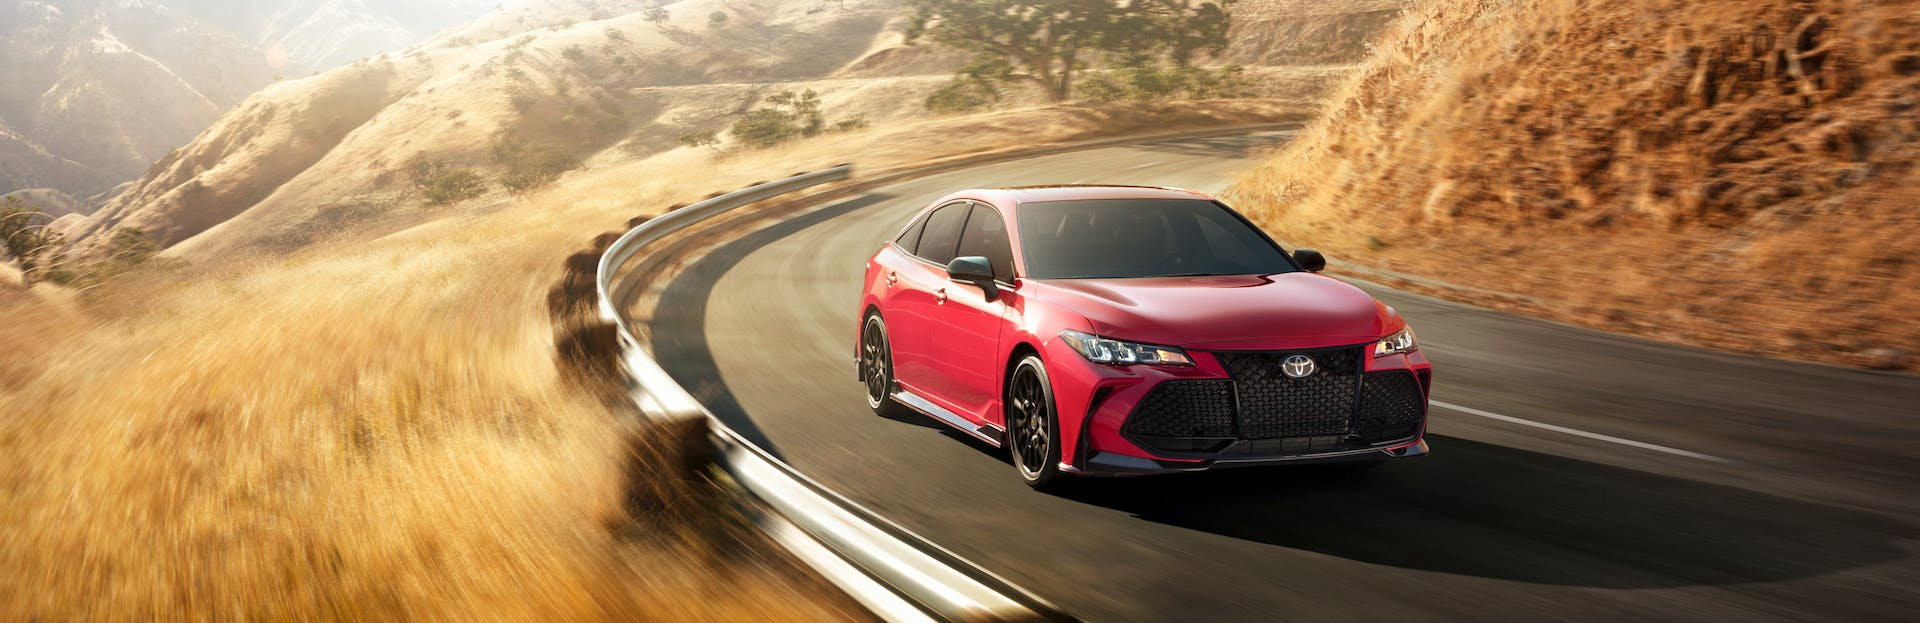 South Hills Toyota is a Toyota Dealership in Canonsburg near Pittsburgh PA | 2021 Toyota Avalon driving on country road